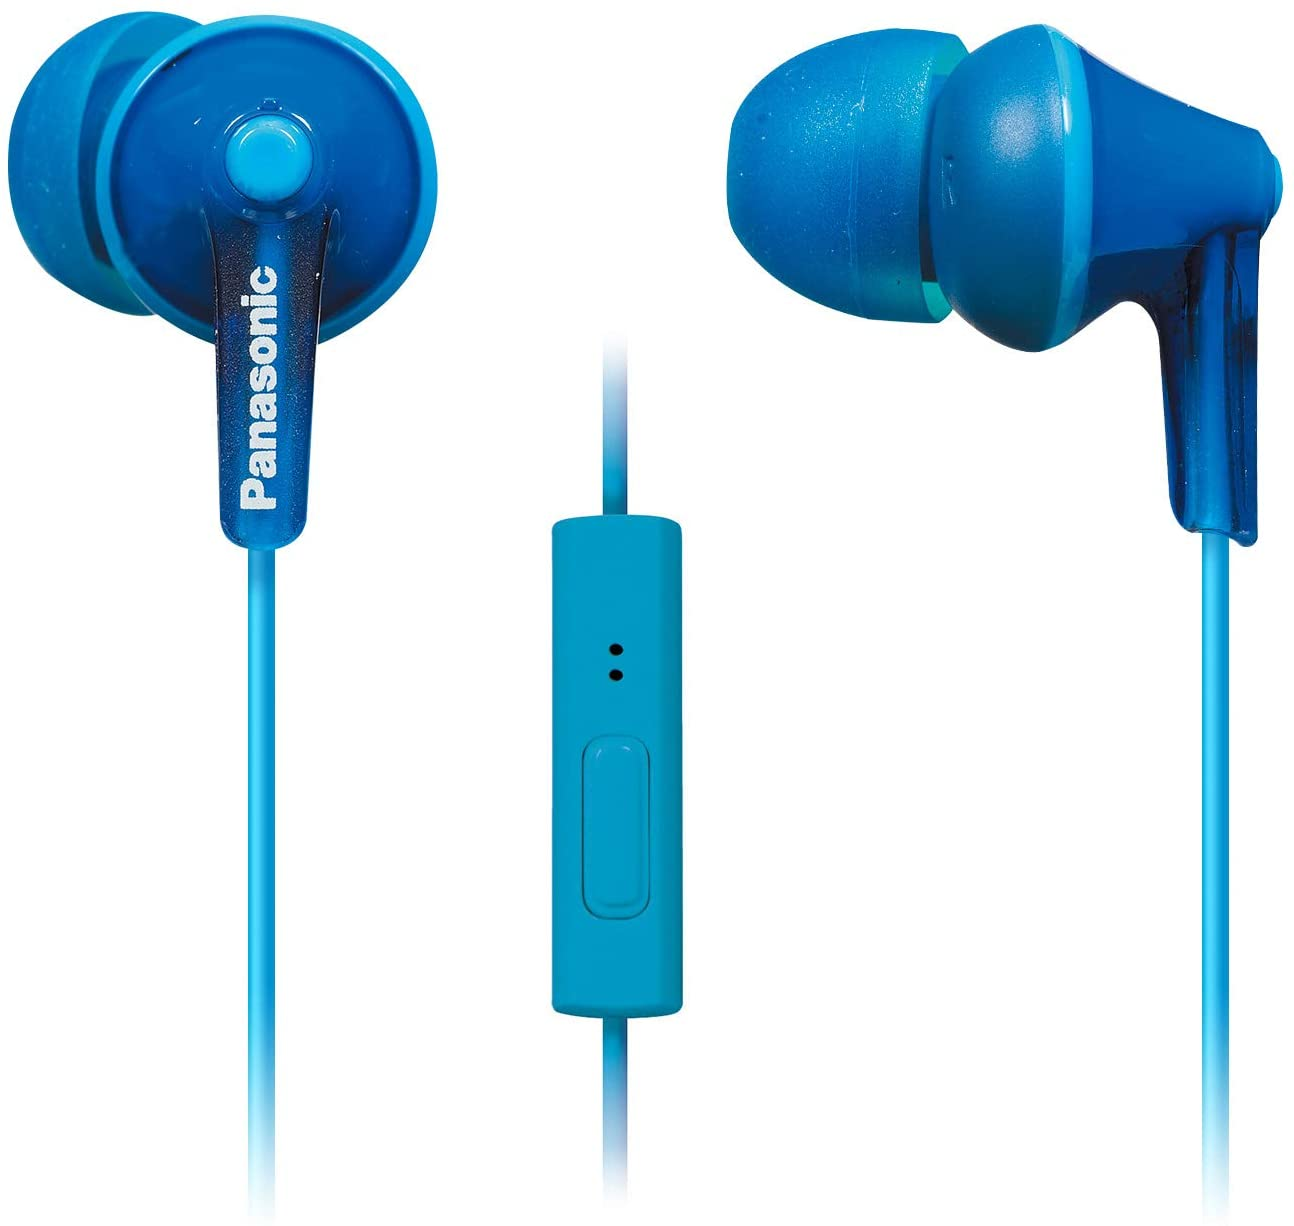 Panasonic Ergo Fit Ear bud Headphones with Microphone and Call Controller Compatible with iPhone, Android, and Blackberry - RP-TCM125-A - In-Ear (Blue)